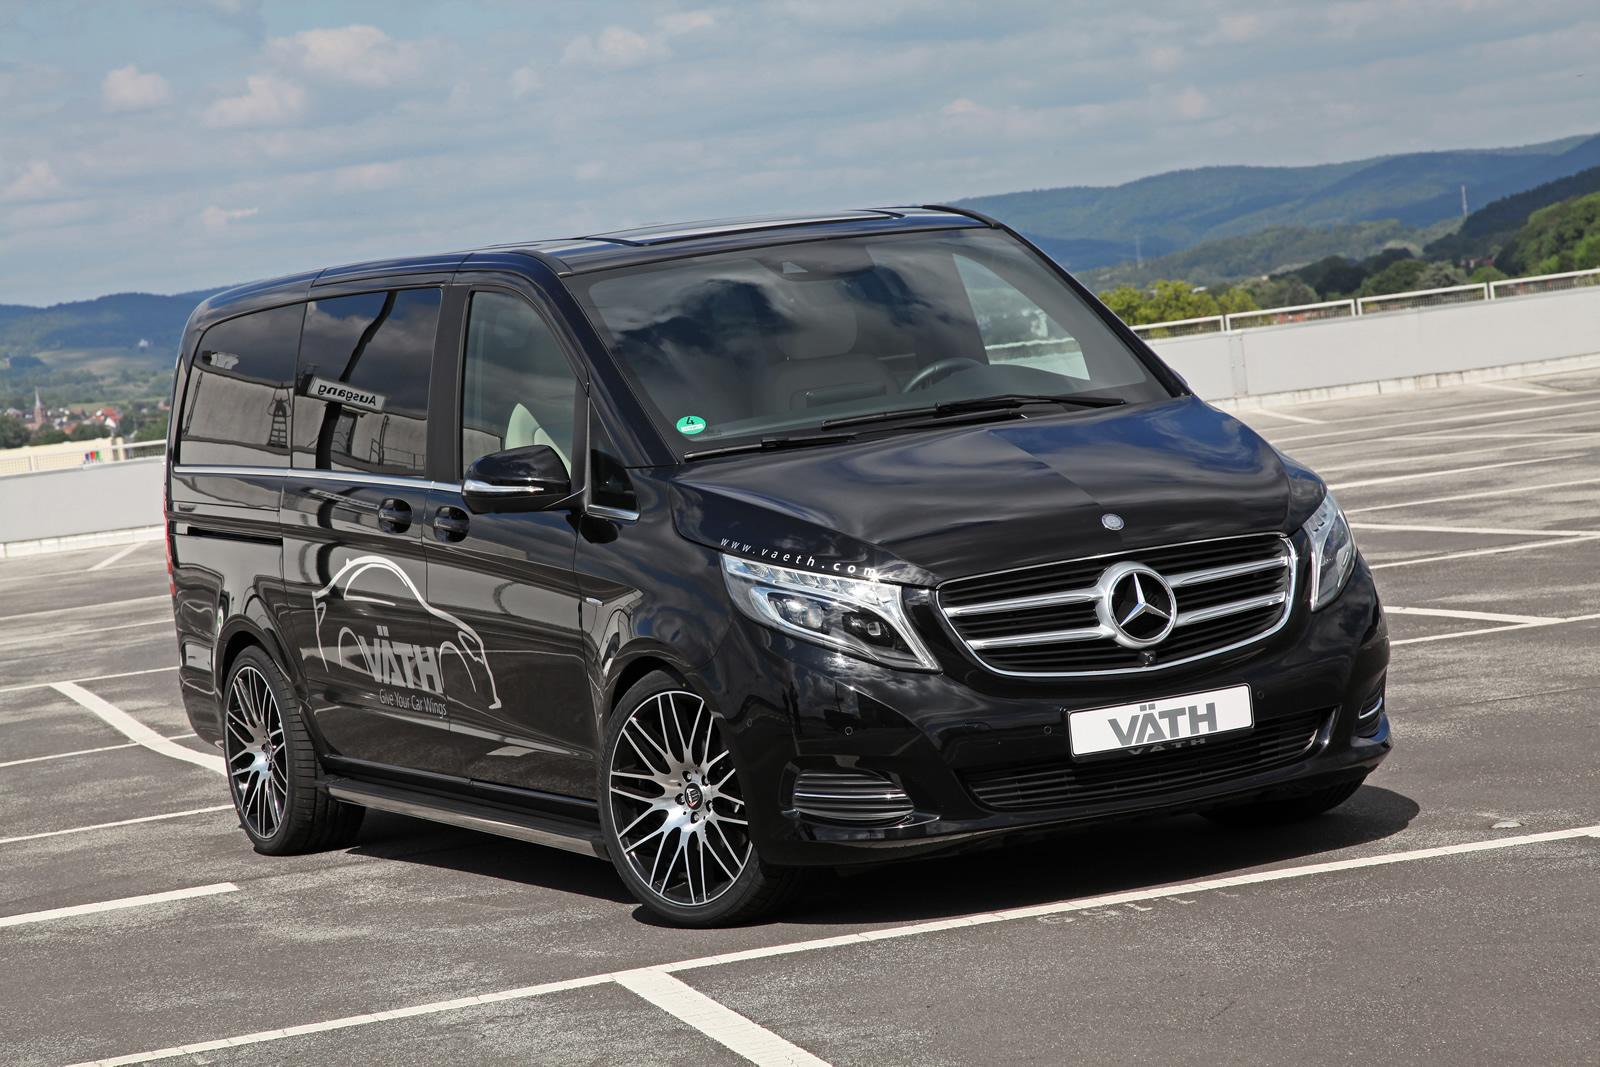 mercedes benz metris w447 v250cdi by v th benztuning